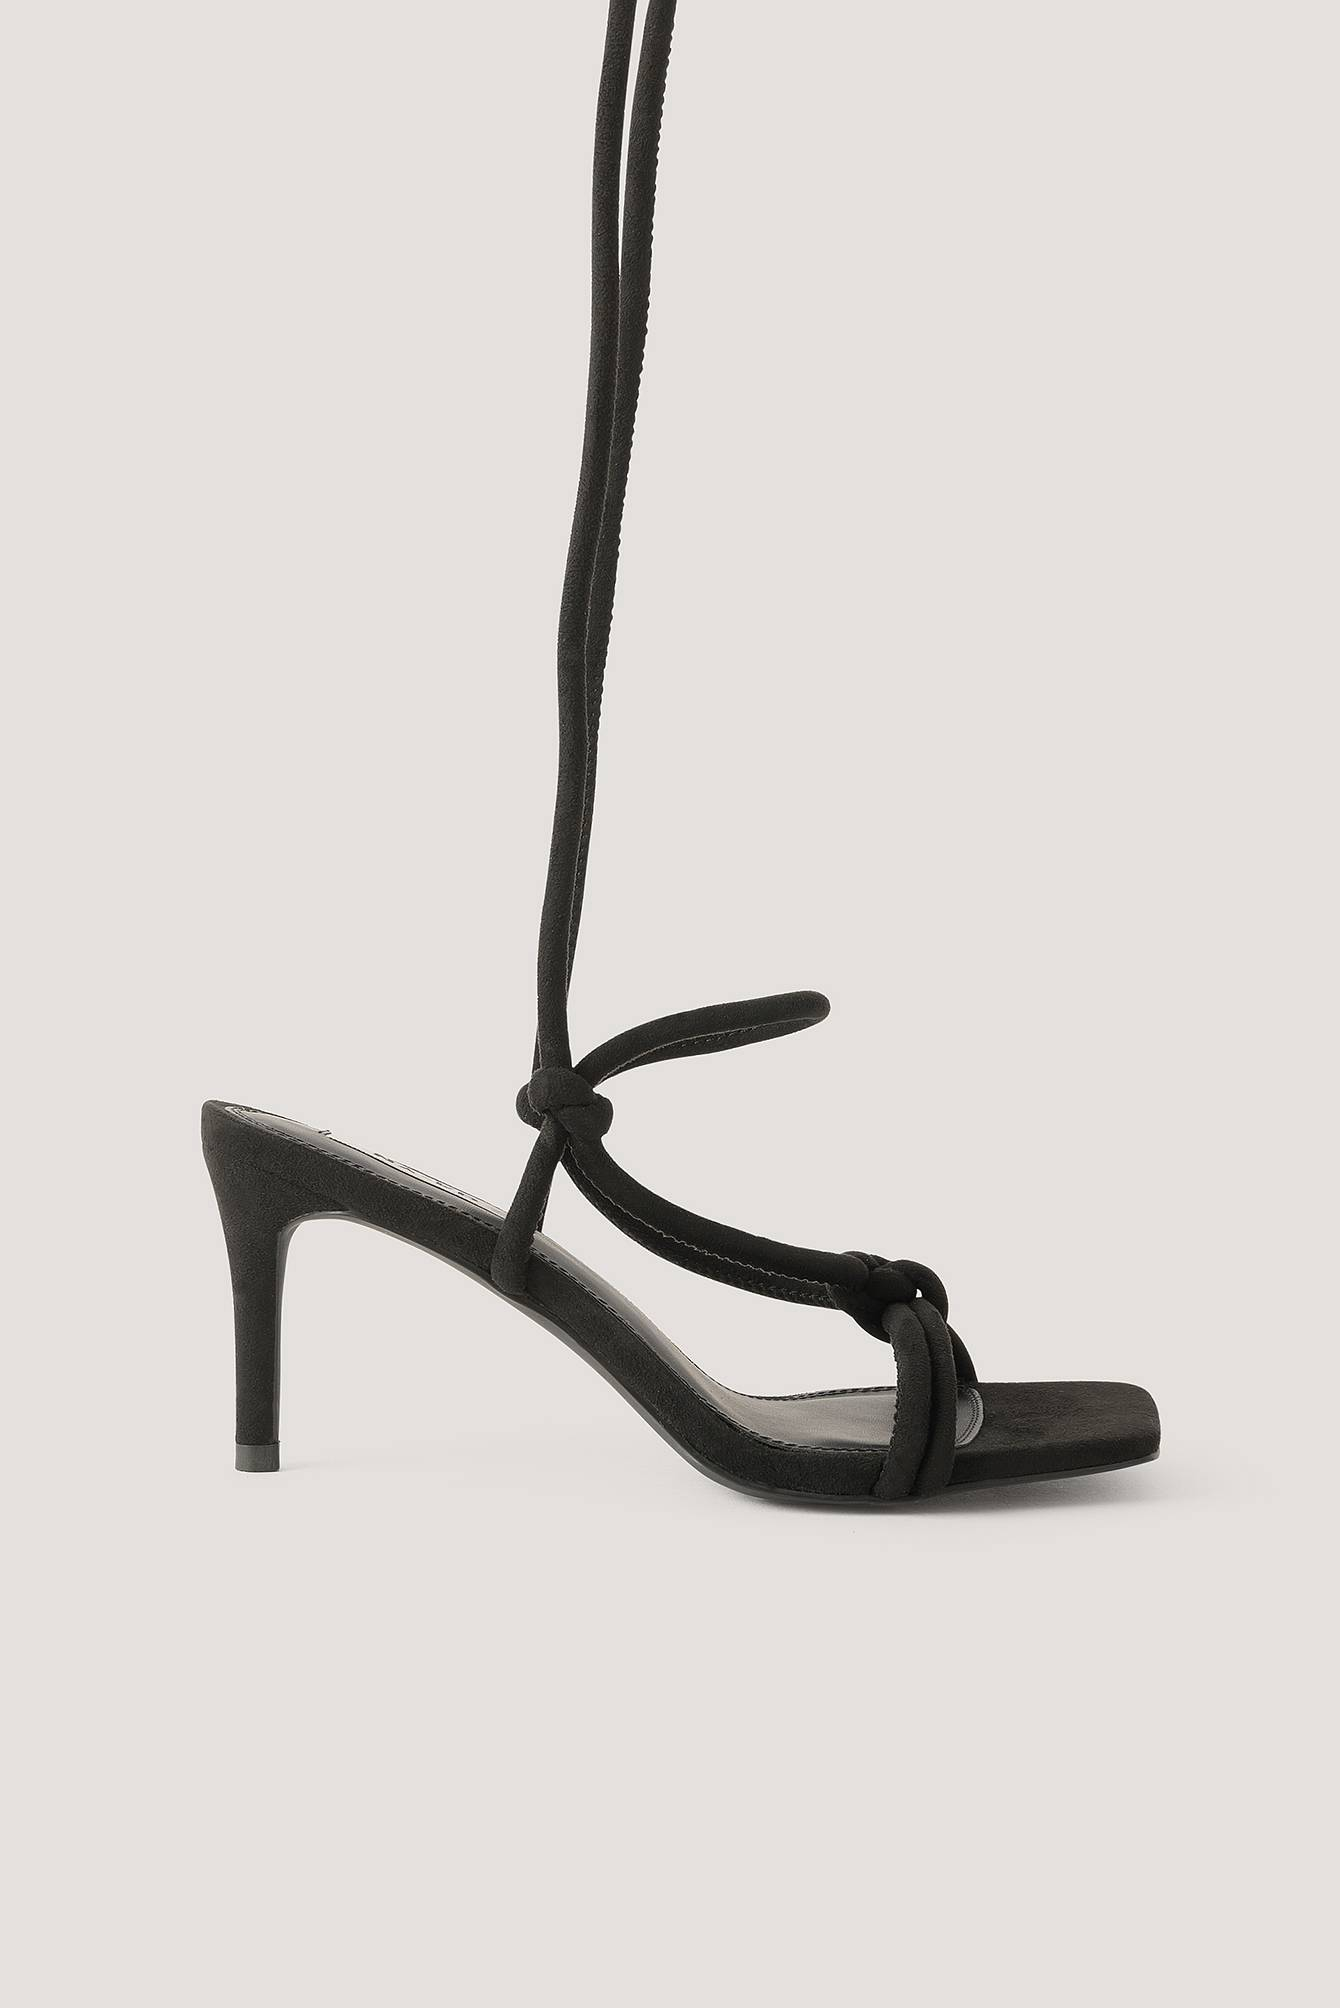 NA-KD Shoes Knotted Straps Heeled Sandals - Black